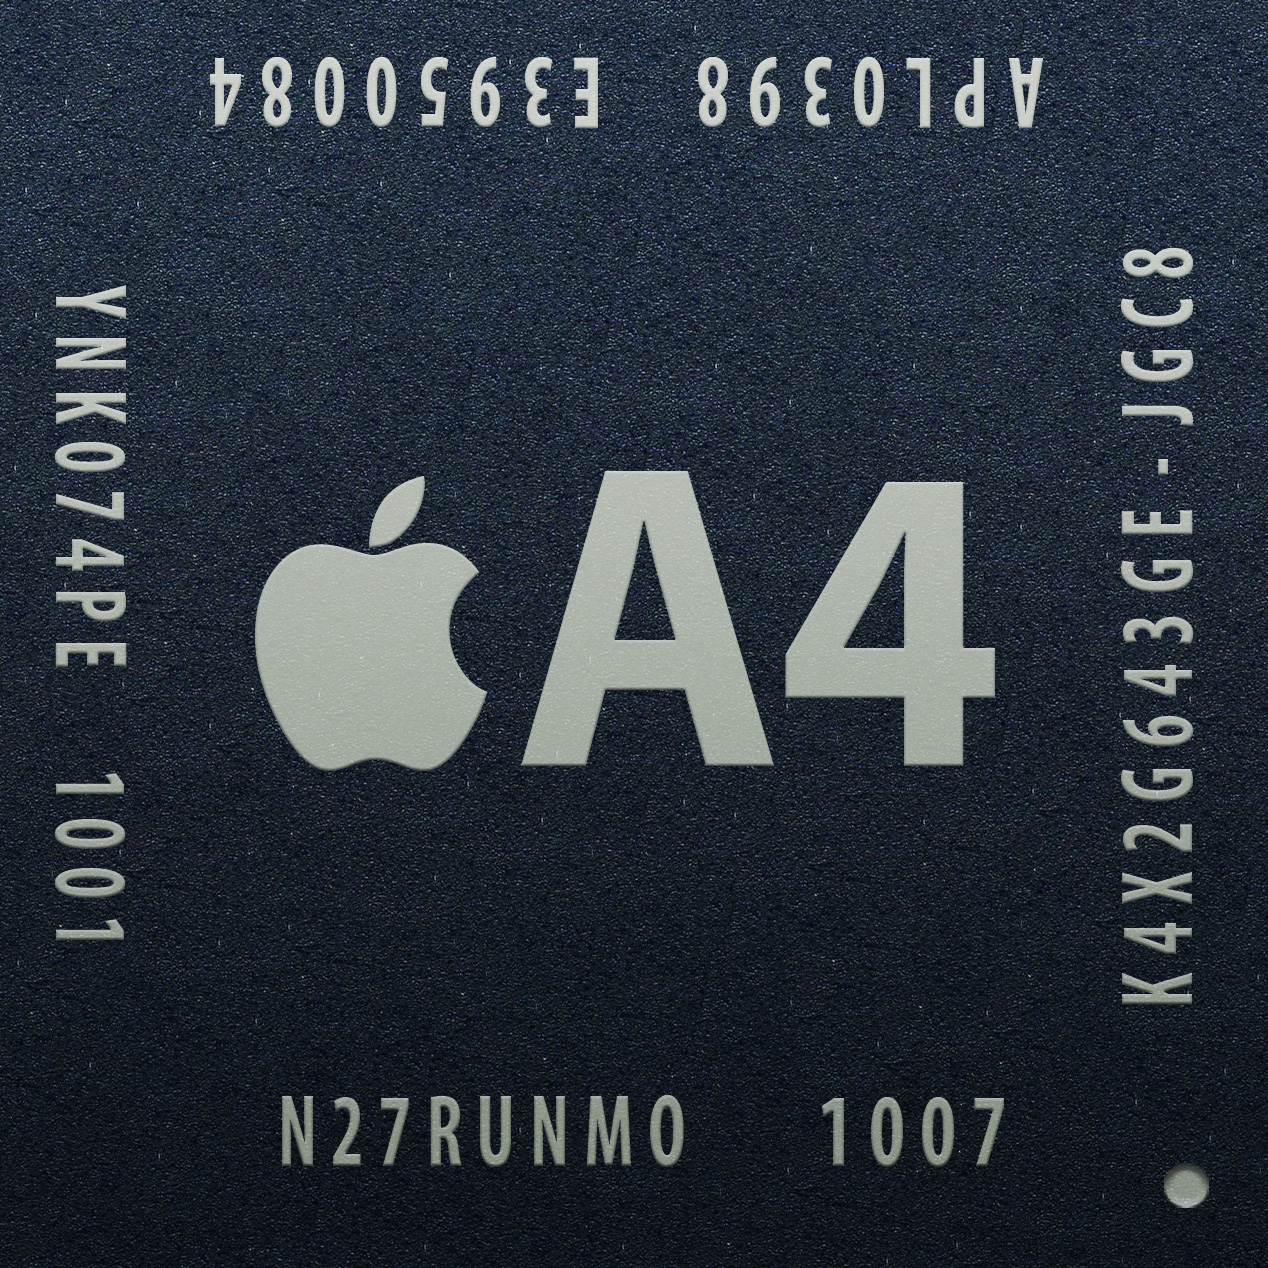 Apple Organizational Chart: Apple A4 Chip.jpg - Wikimedia Commons,Chart